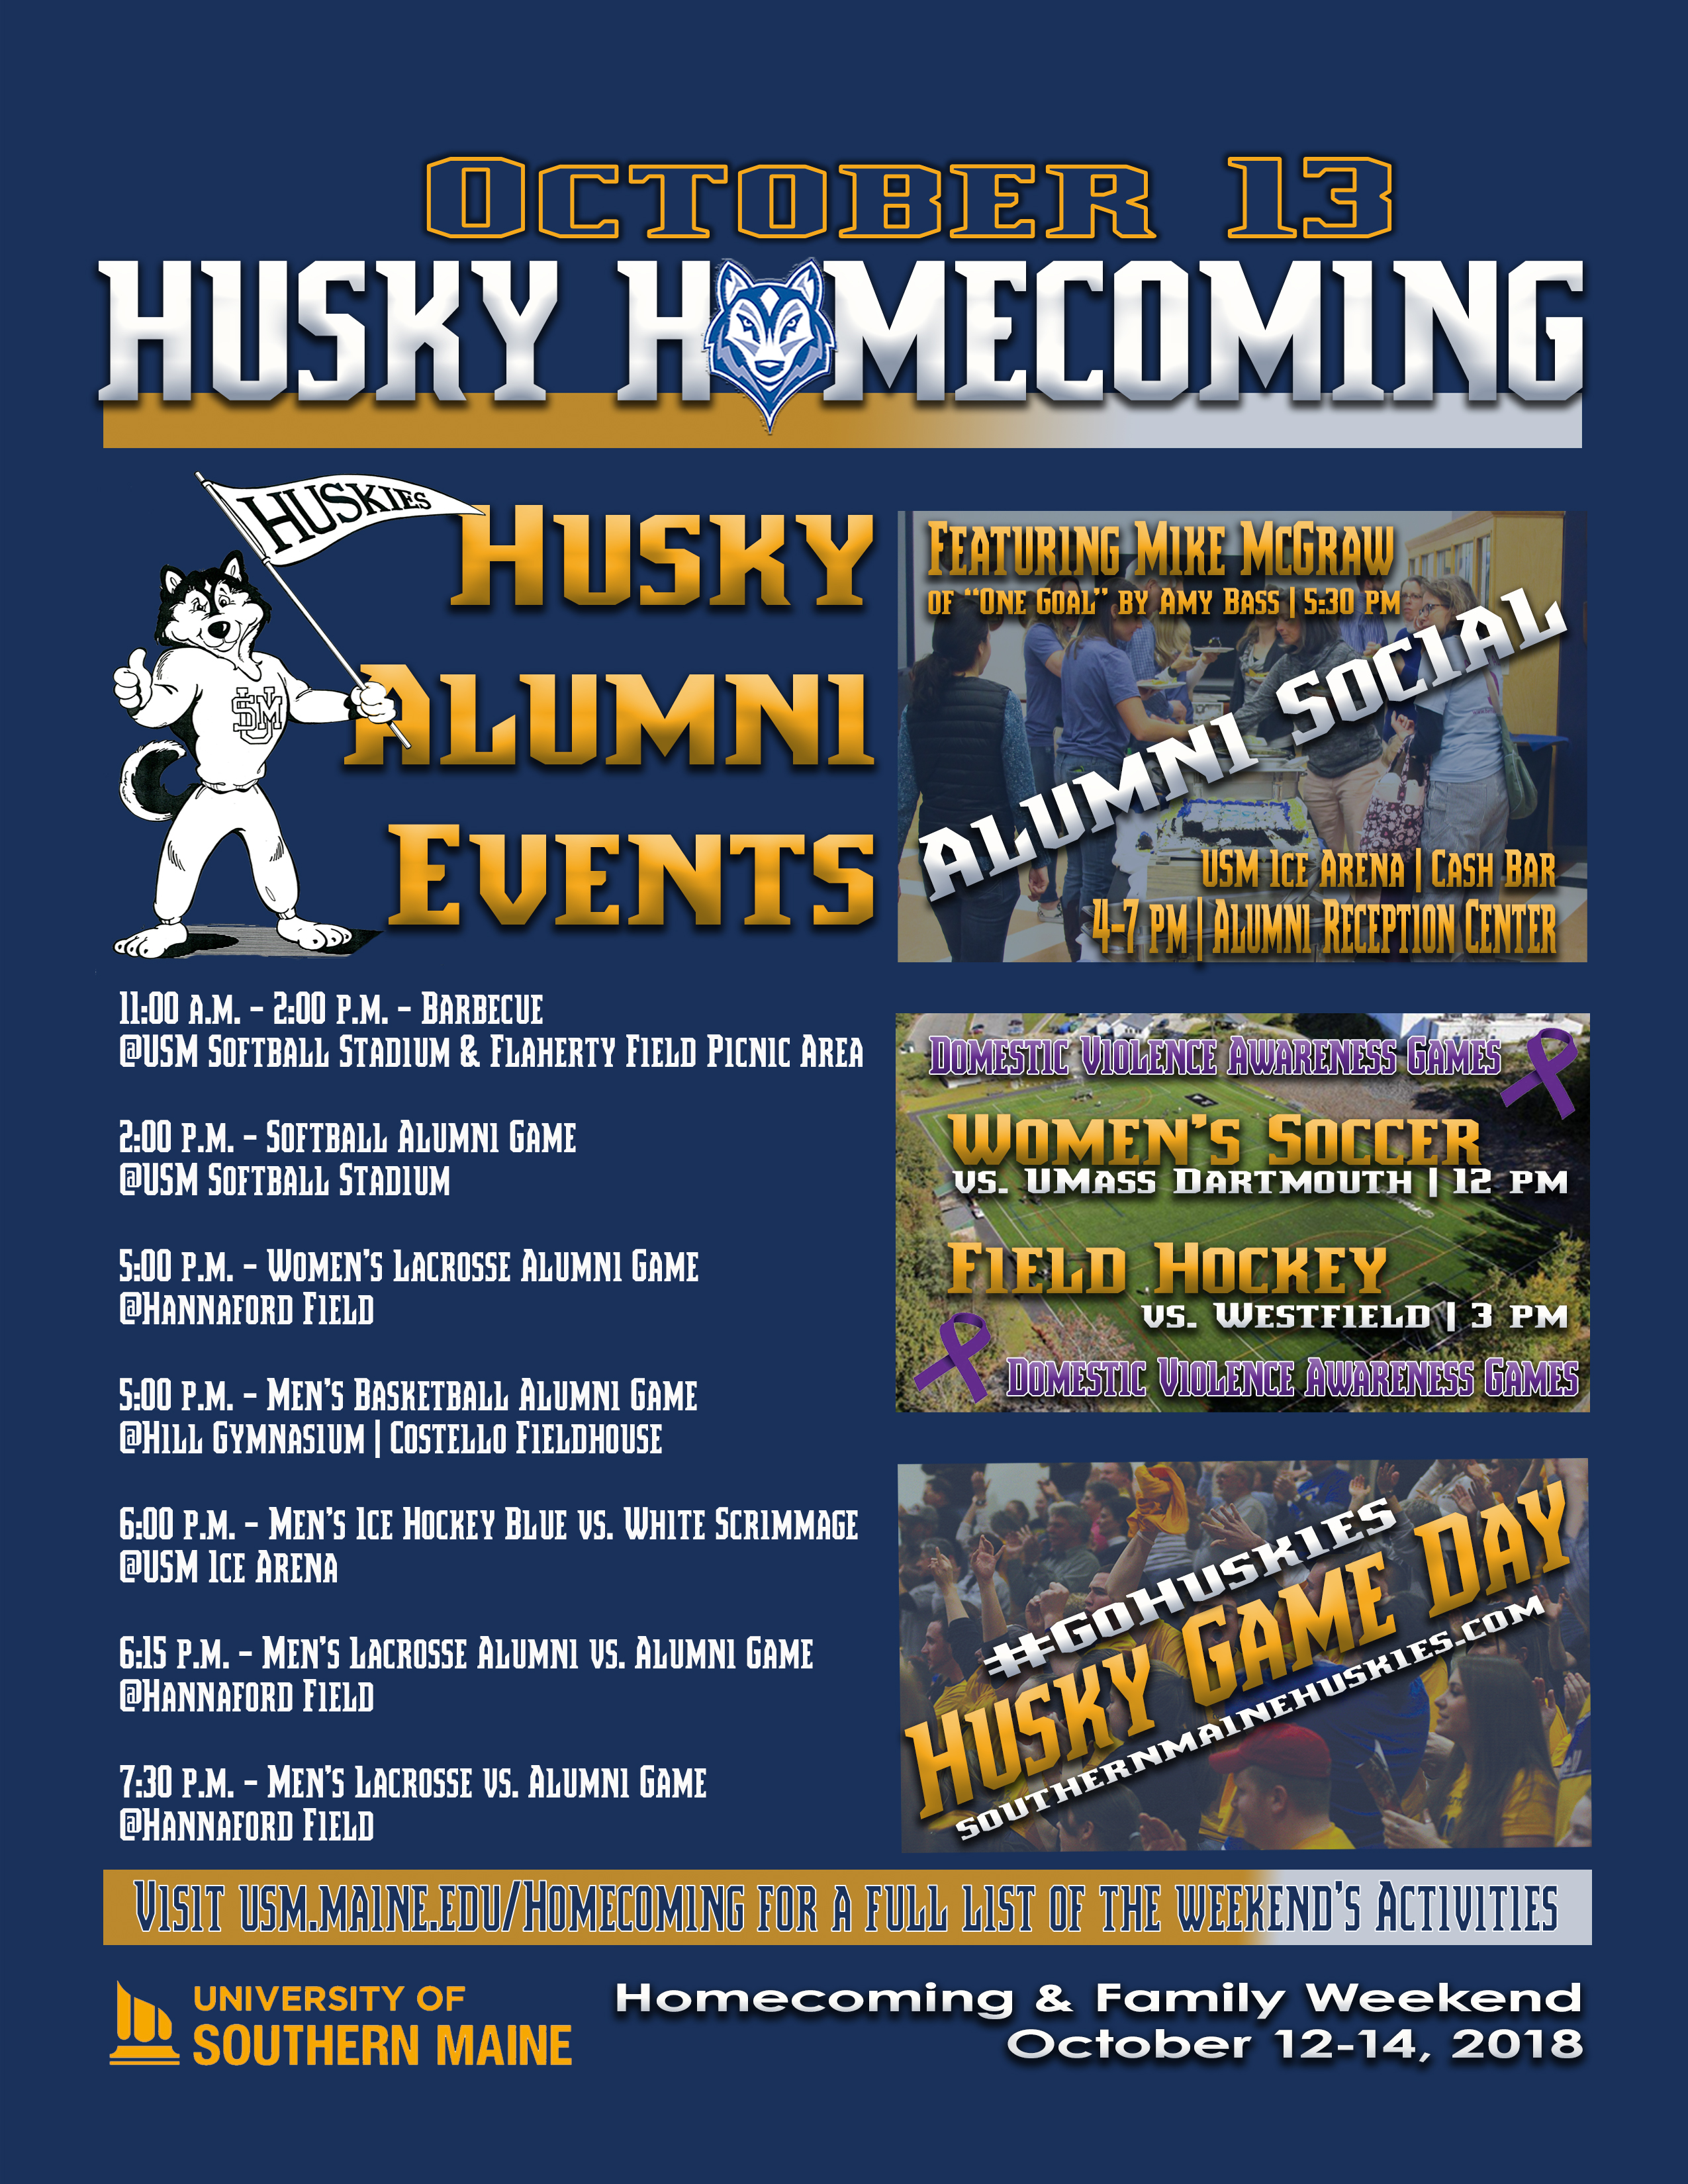 Husky Homecoming Schedule of Events Graphic